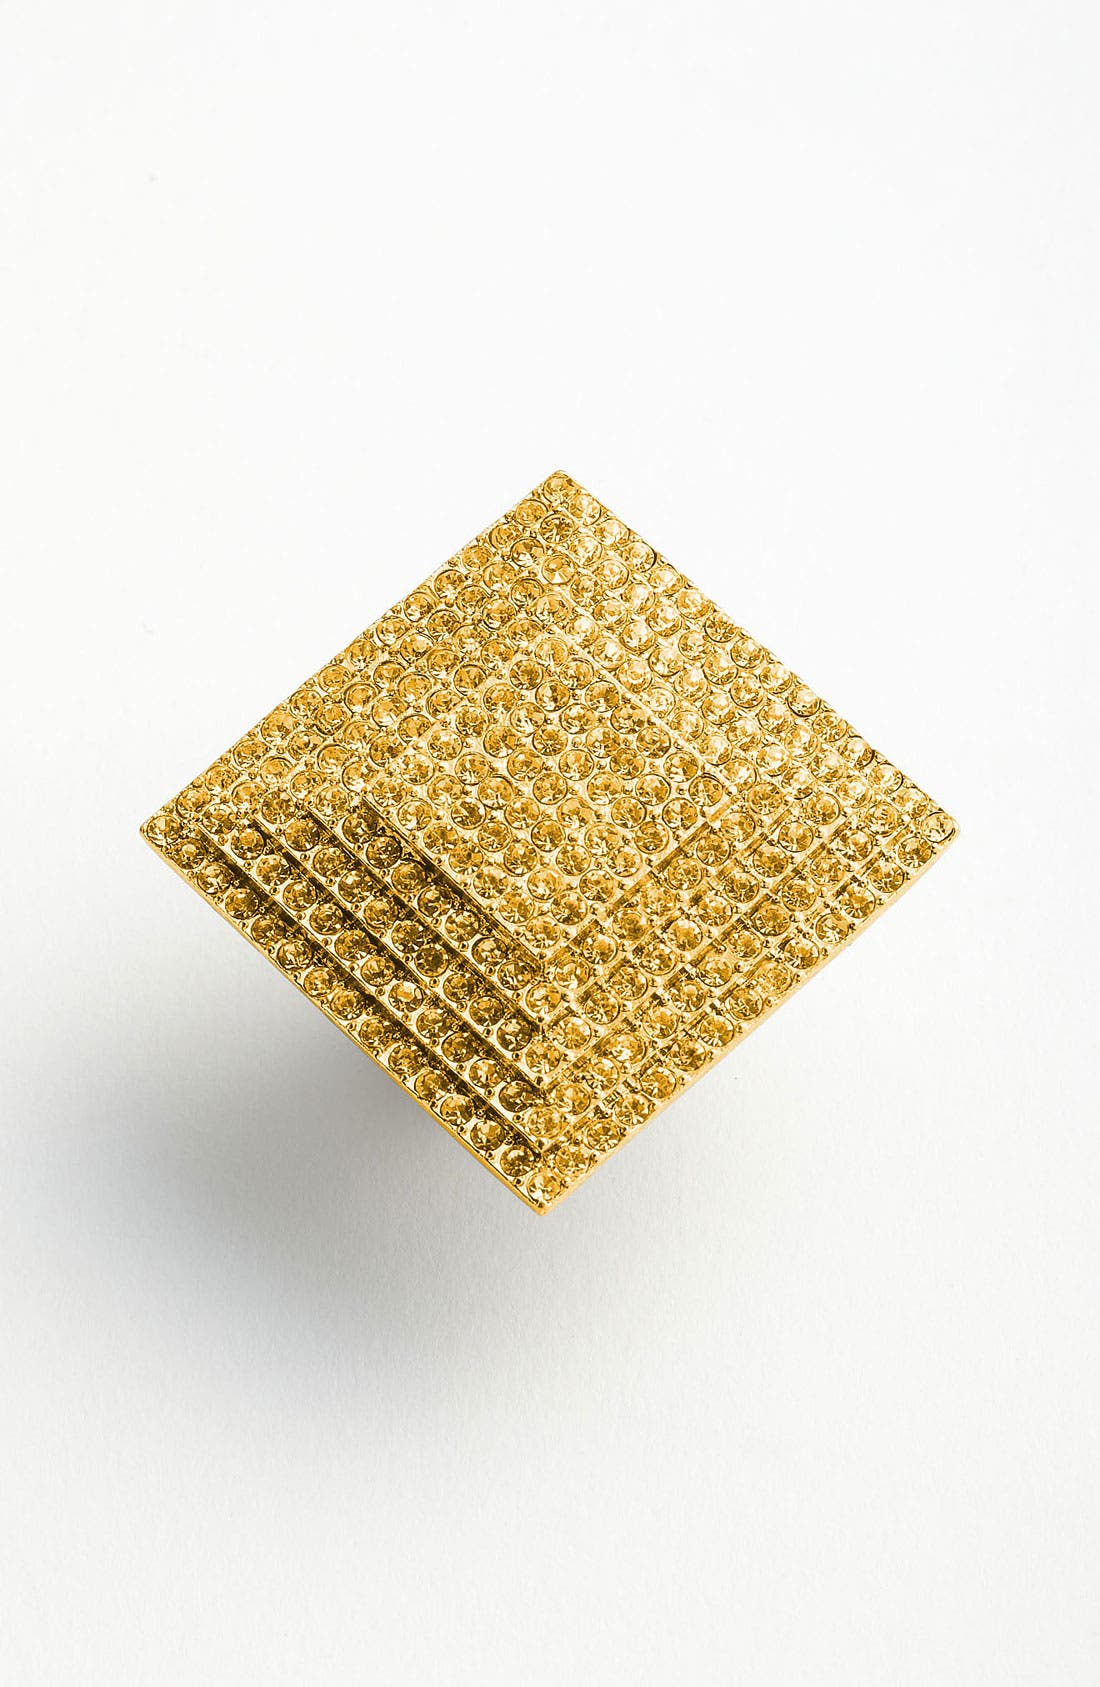 Alternate Image 1 Selected - Natasha Couture Large Square Crystal Ring